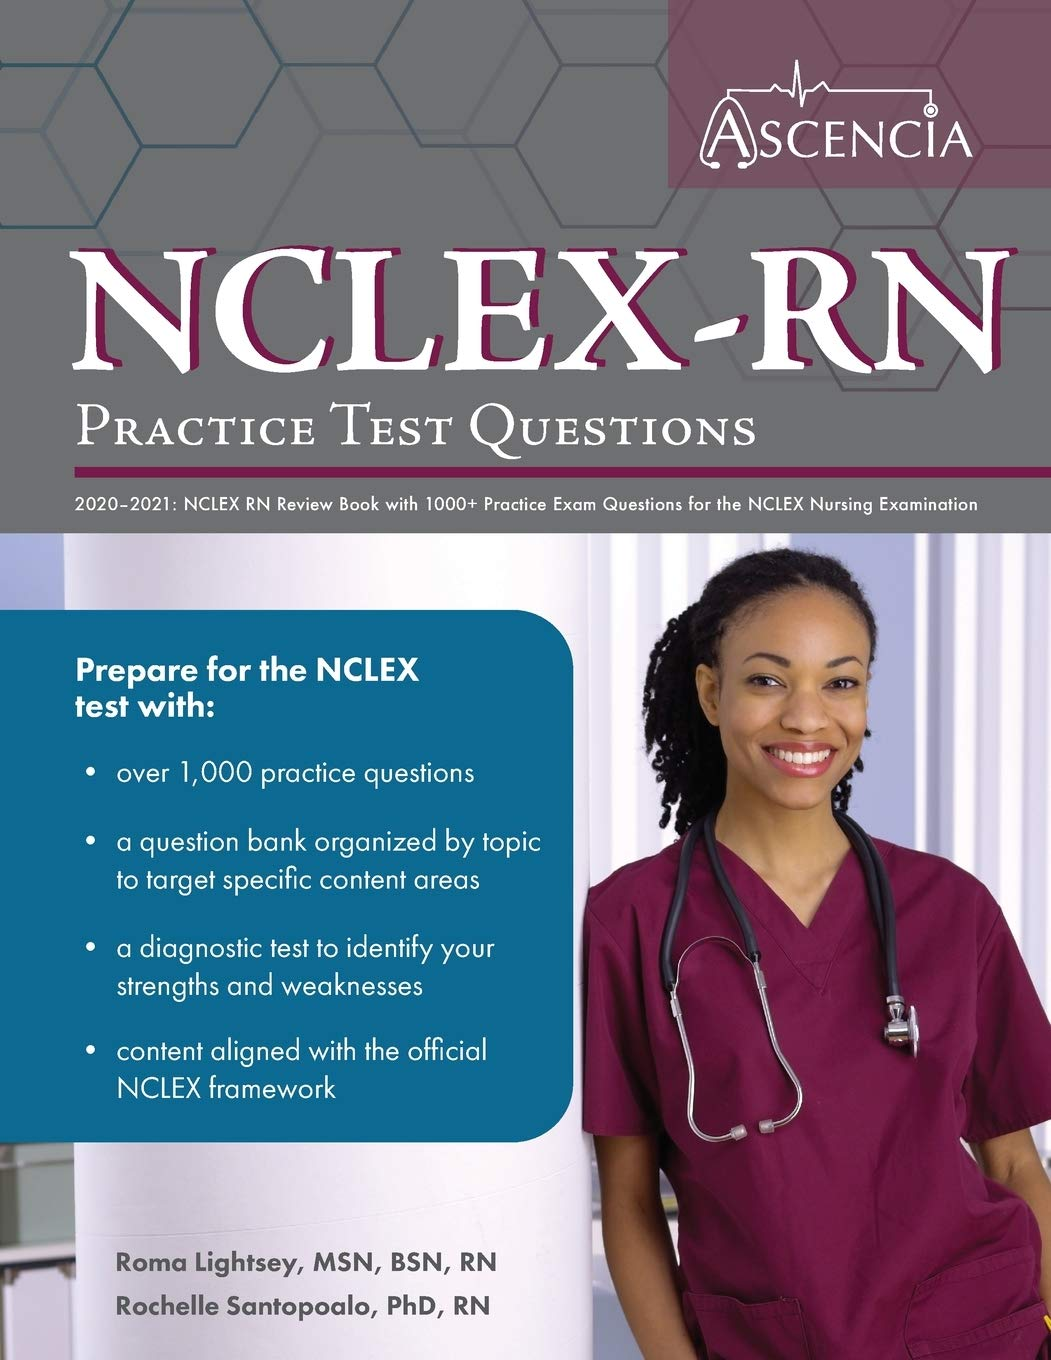 Image OfNCLEX-RN Practice Test Questions 2020-2021: NCLEX RN Review Book With 1000+ Practice Exam Questions For The NCLEX Nursing ...